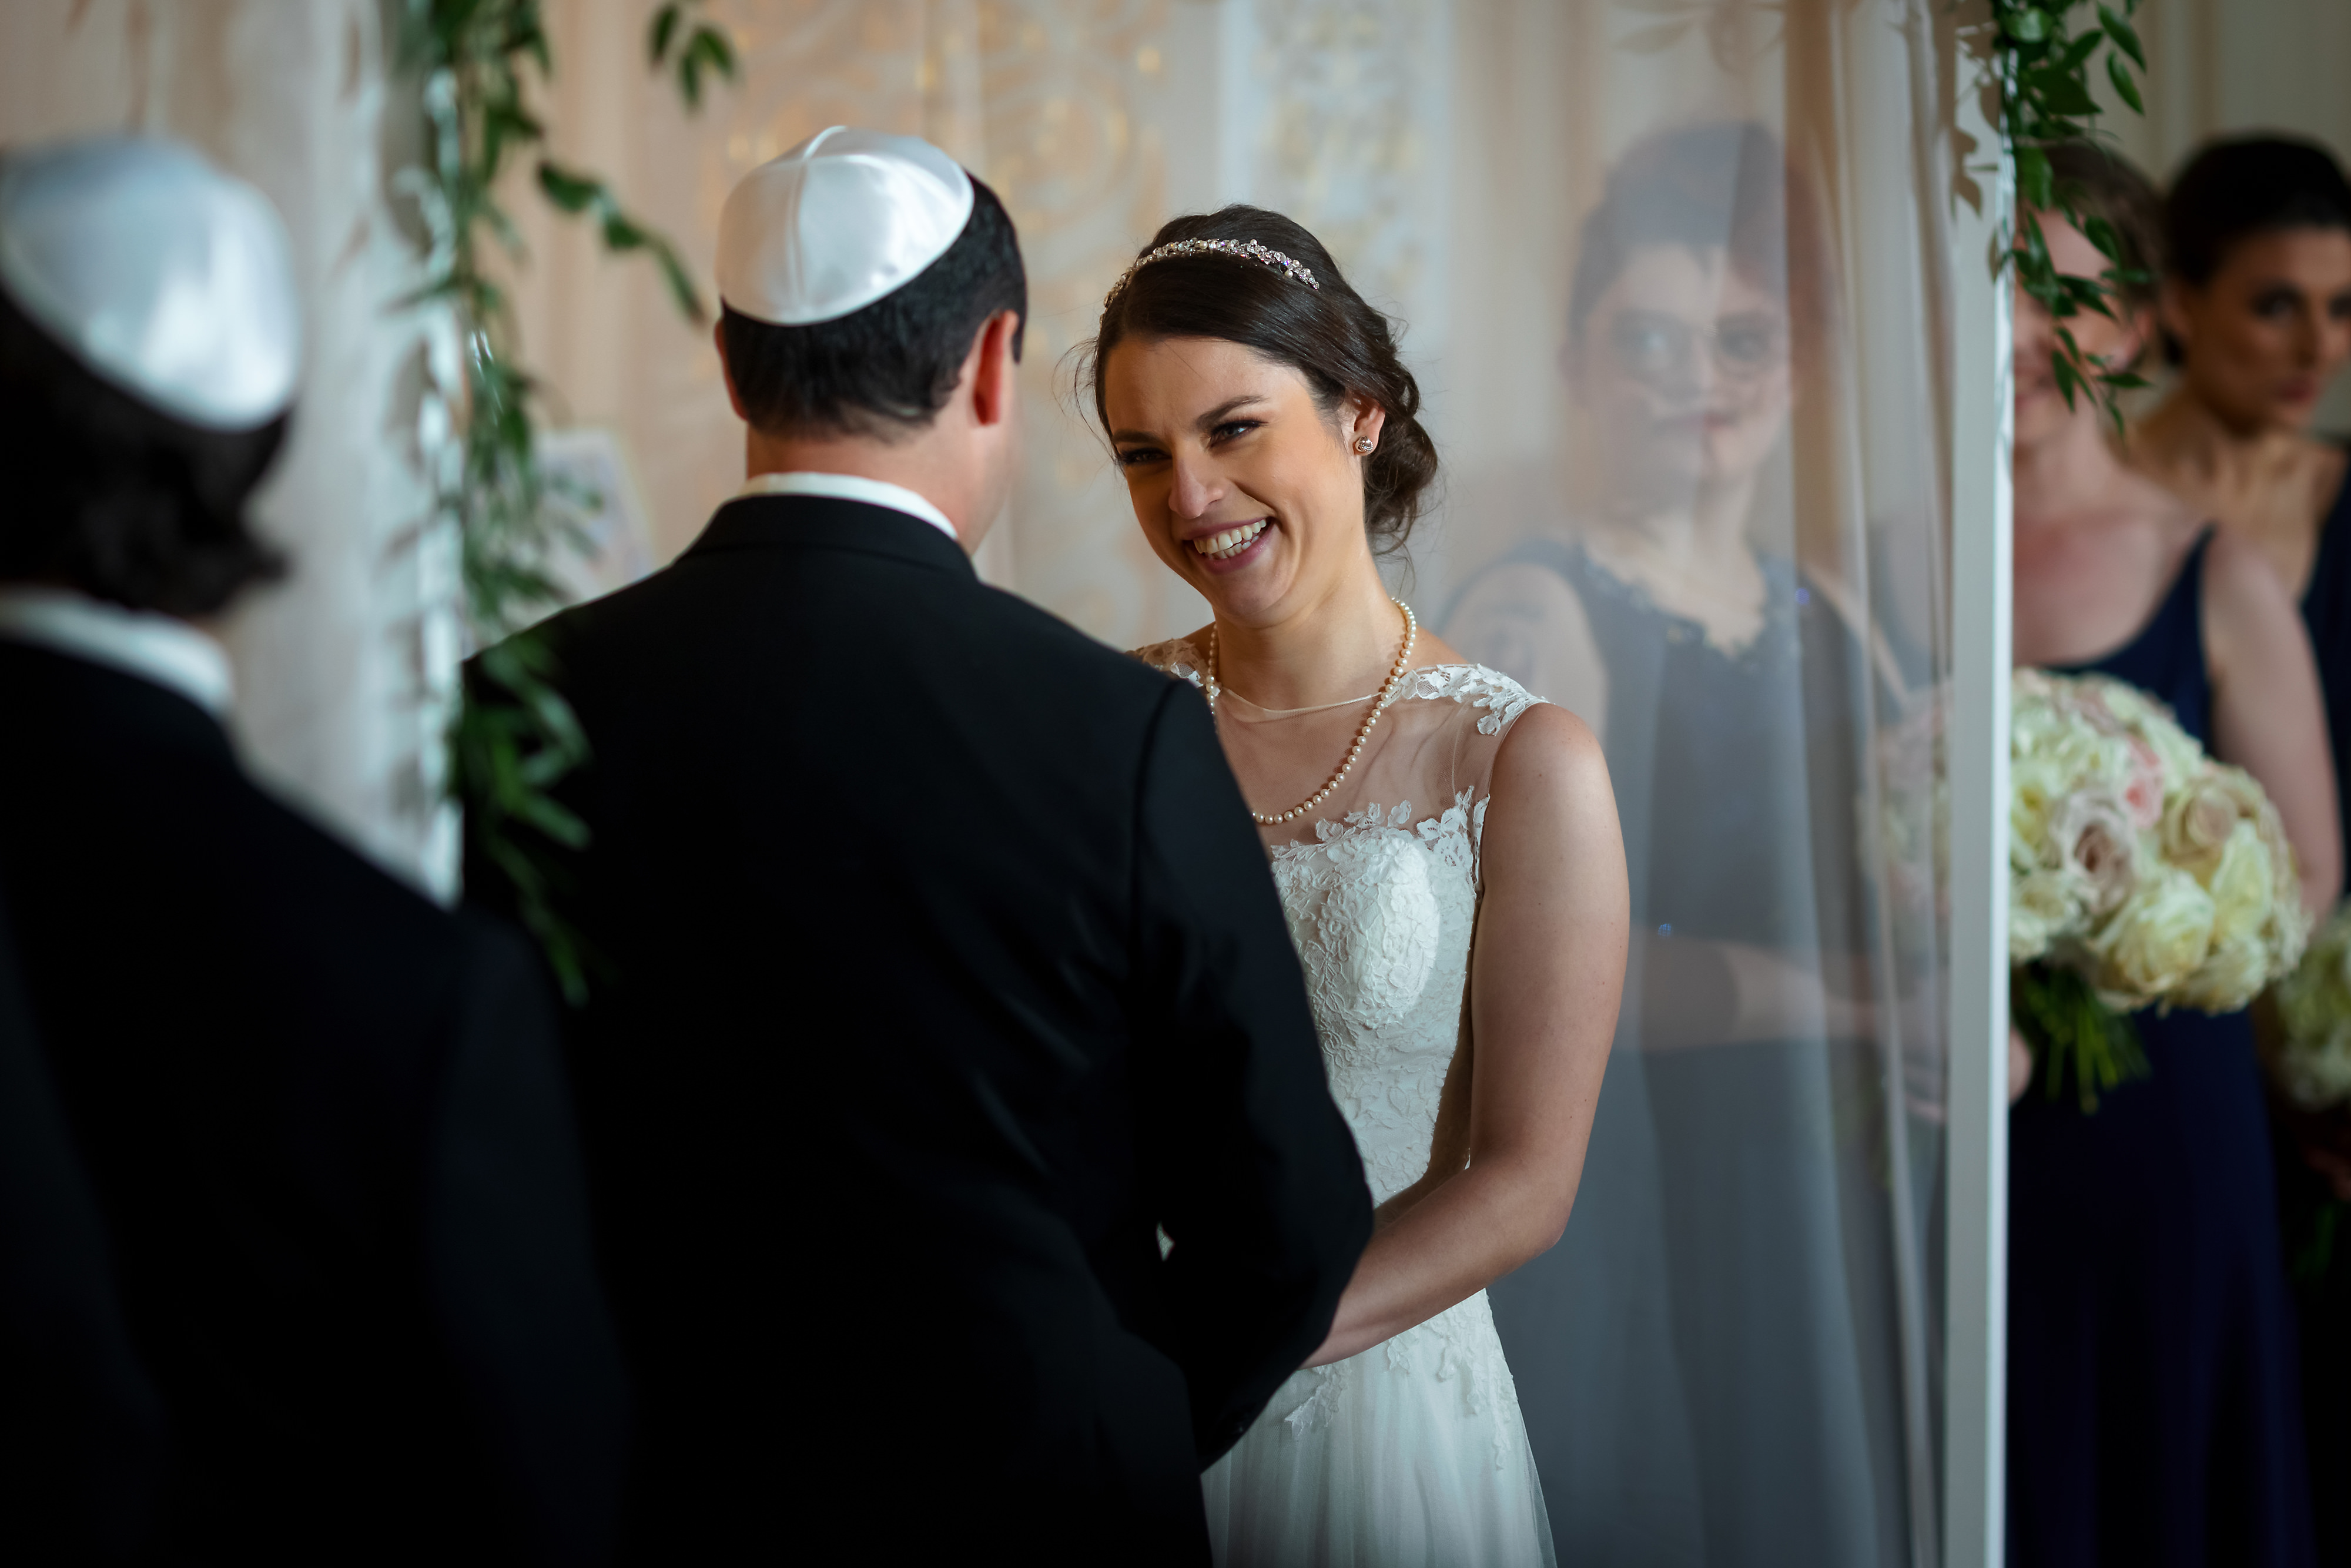 Bride smiles during wedding ceremony at the Rookery Building in Chicago